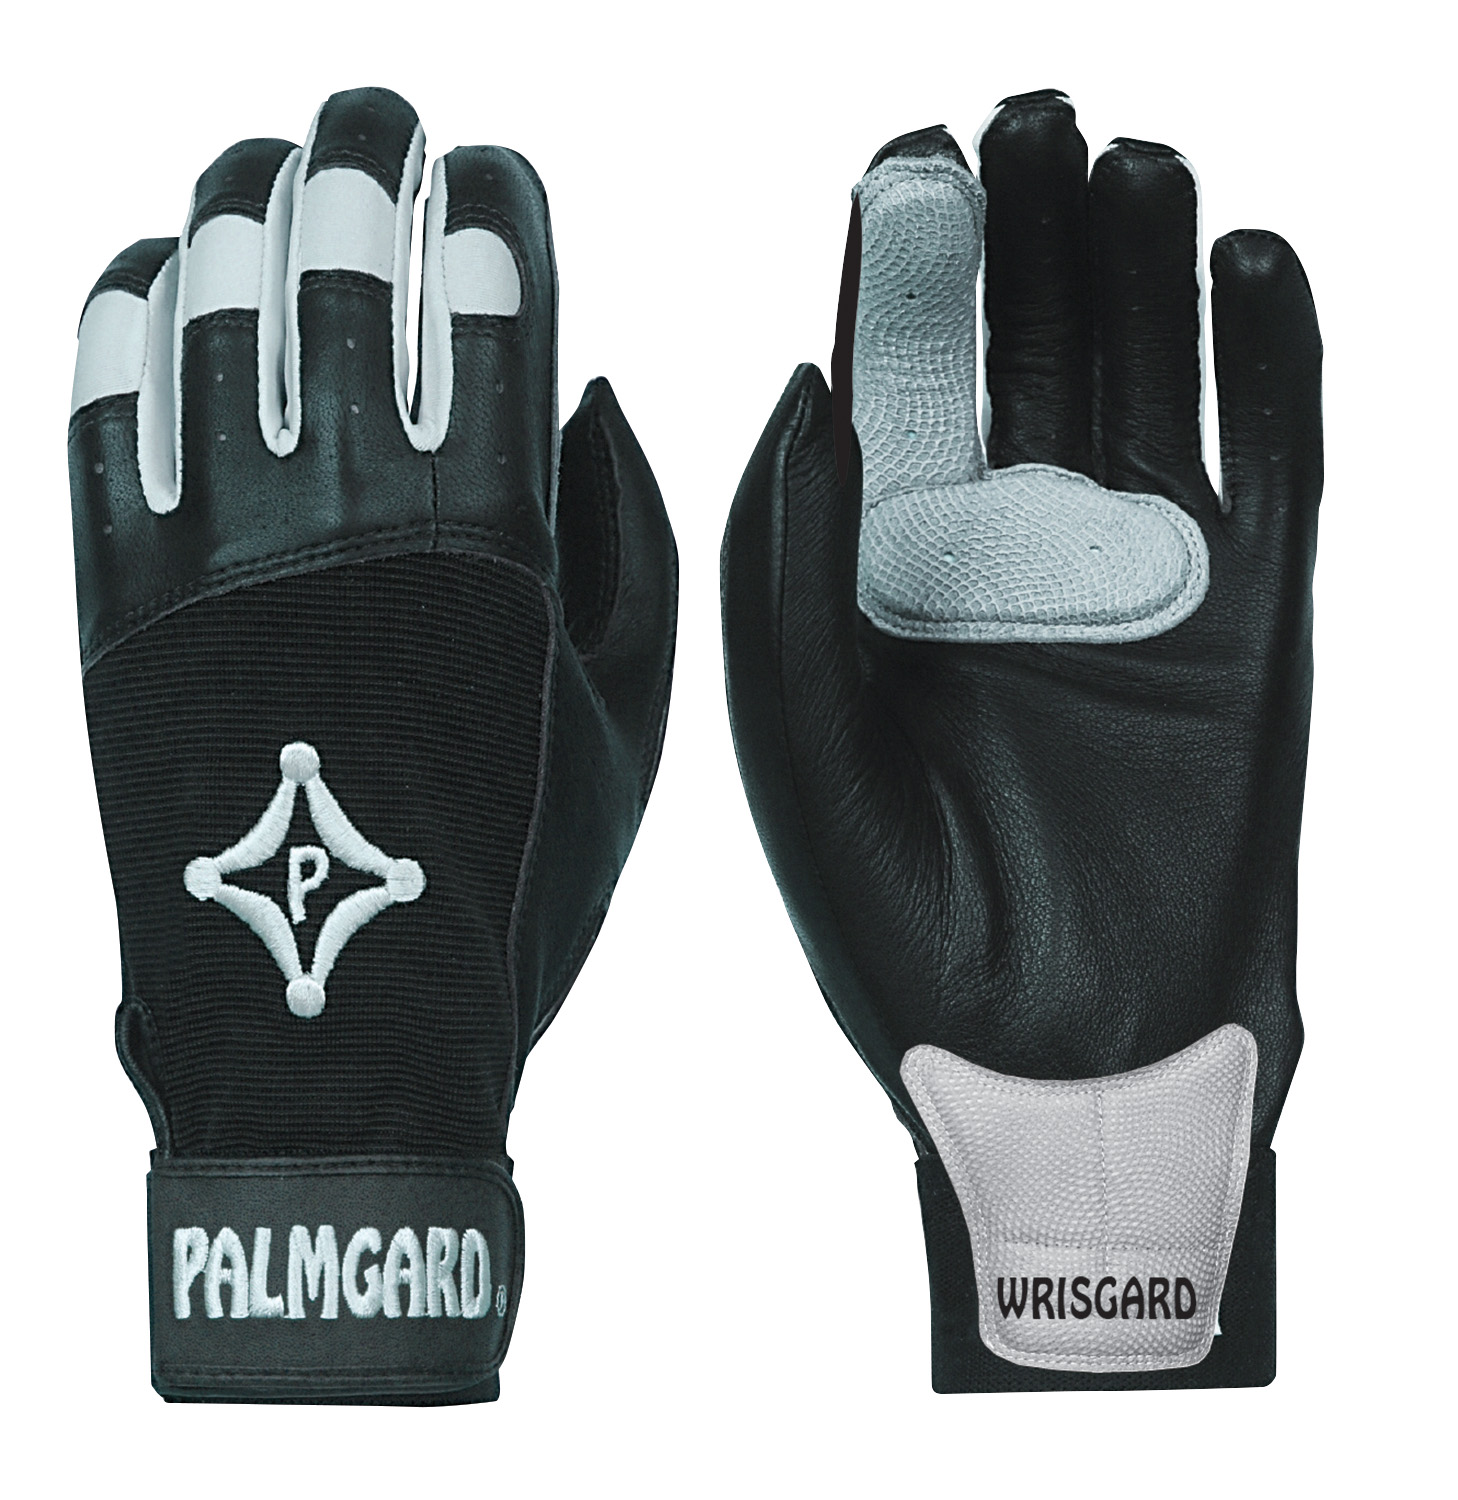 PWG101 PalmGard® Inner Glove With Built in WristGard Left Hand THUMBNAIL